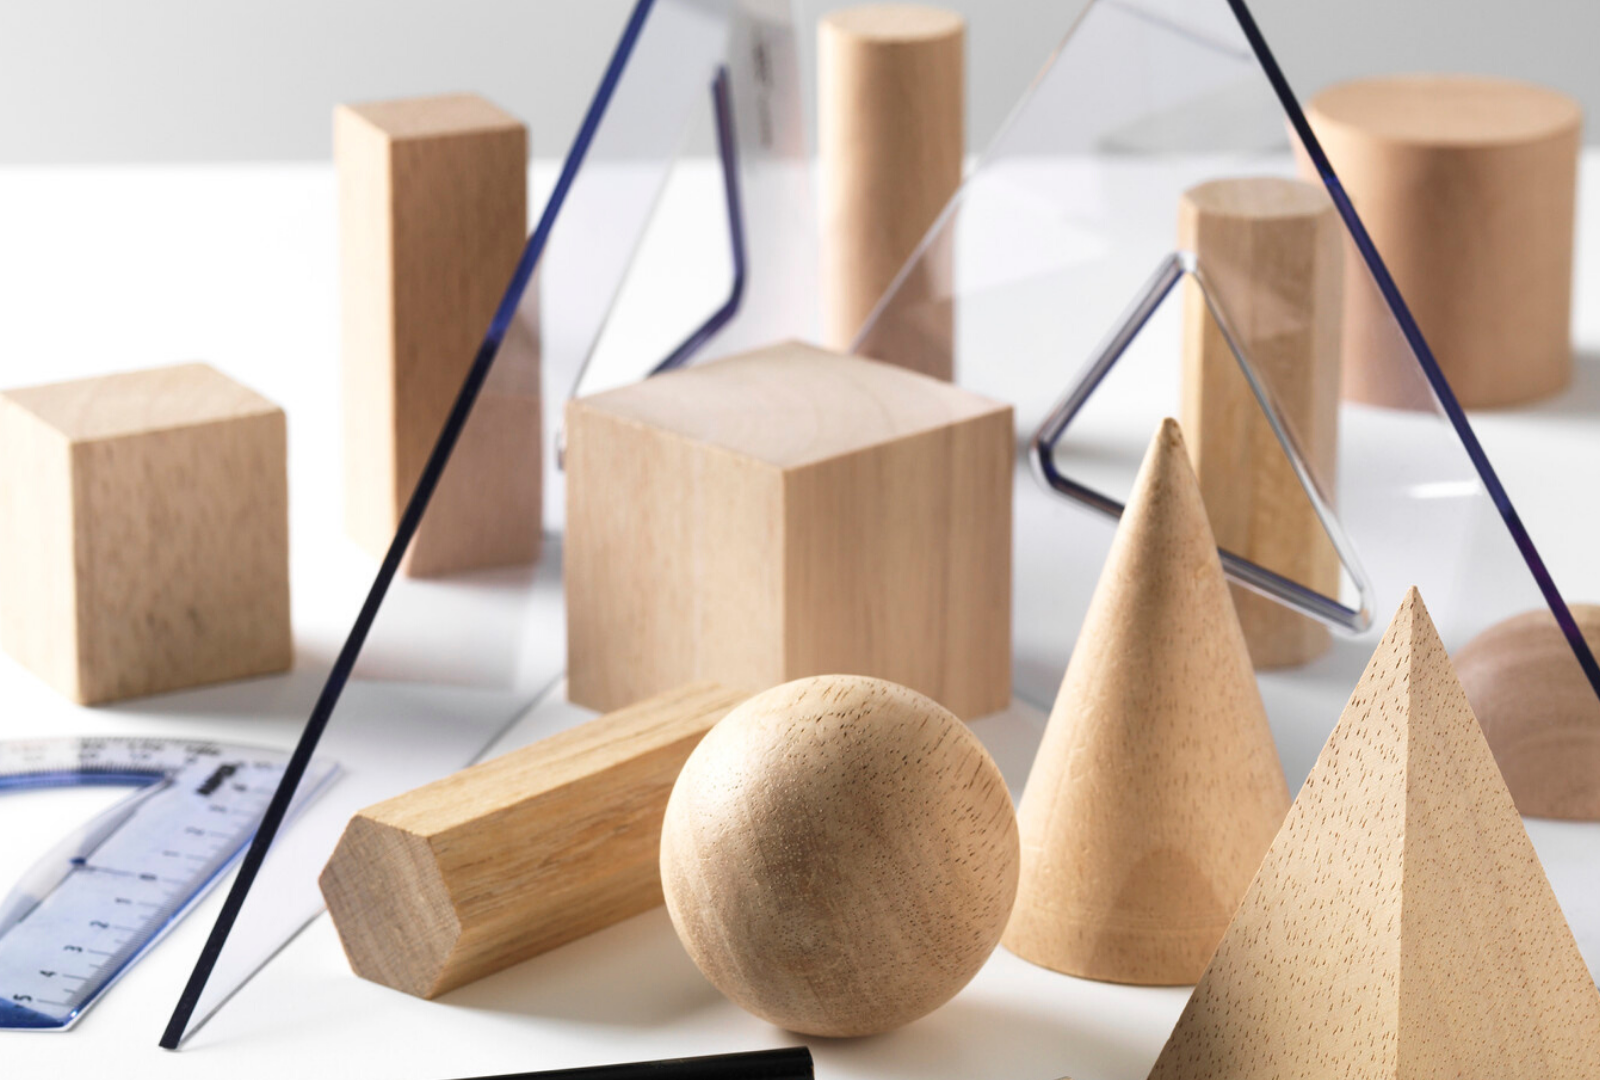 Wooden 3D Objects